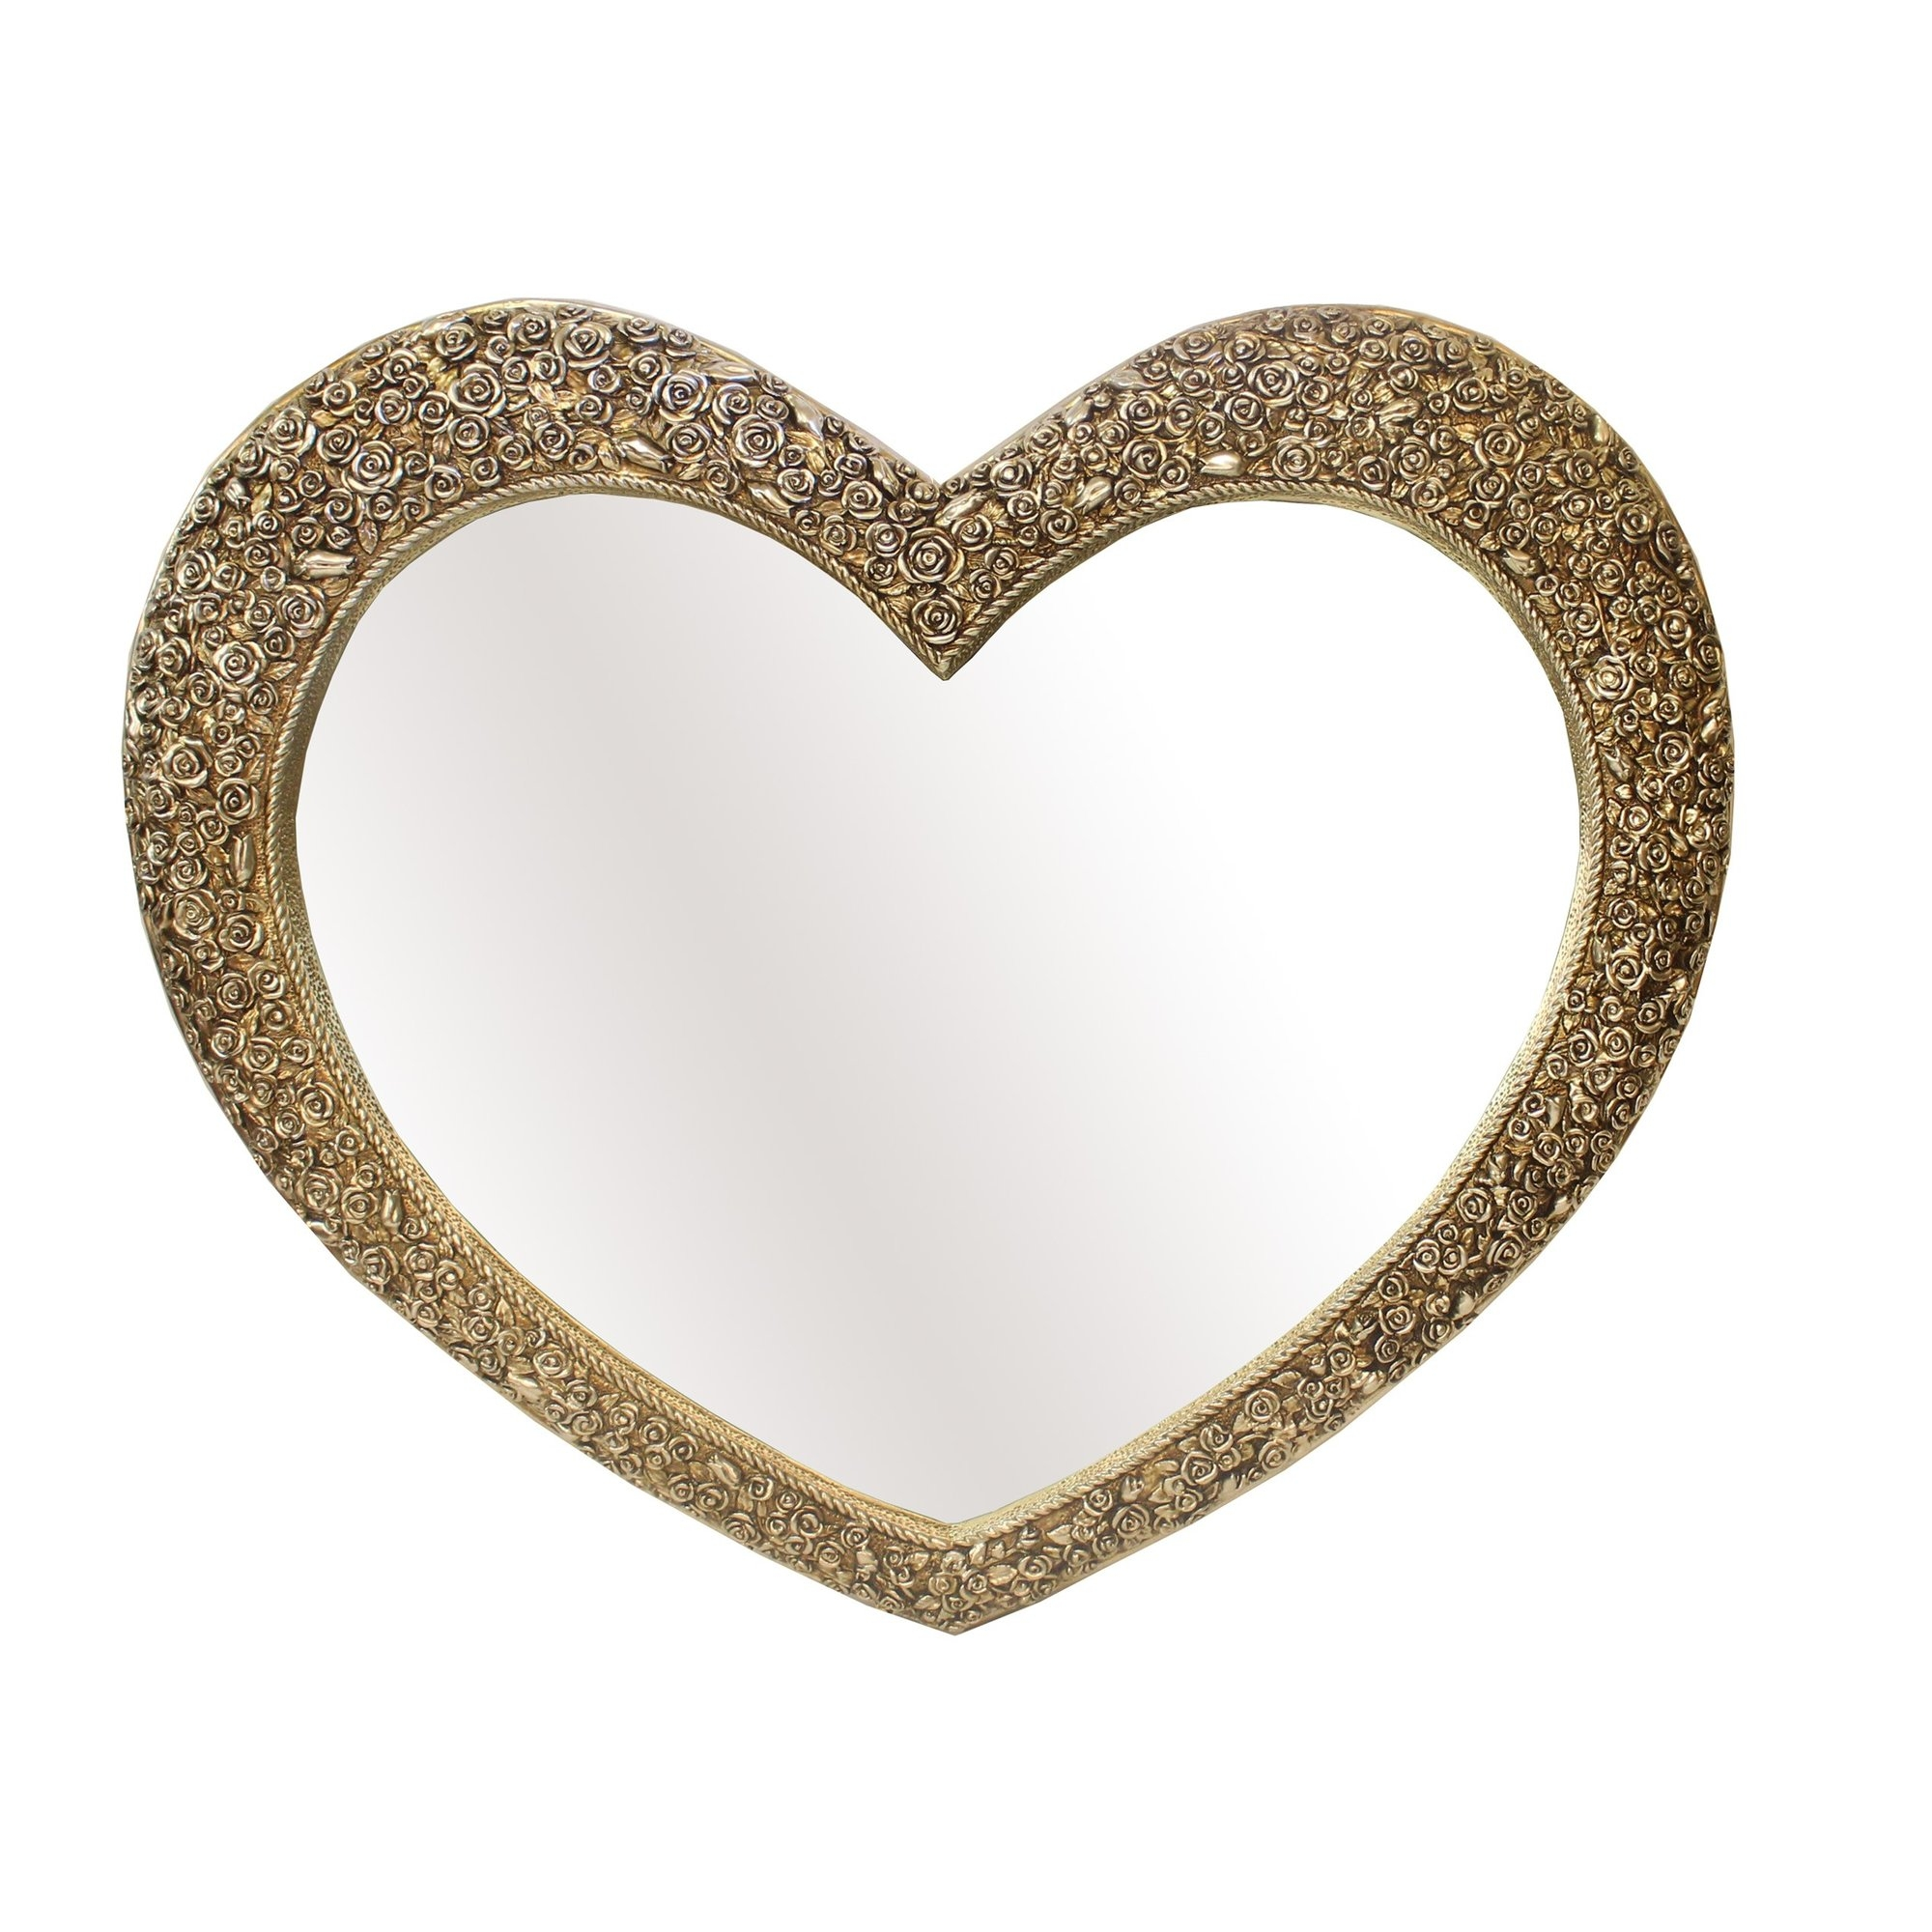 Derrys Rose Heart Wall Mirror Reviews Wayfaircouk For Heart Wall Mirror (Image 4 of 15)